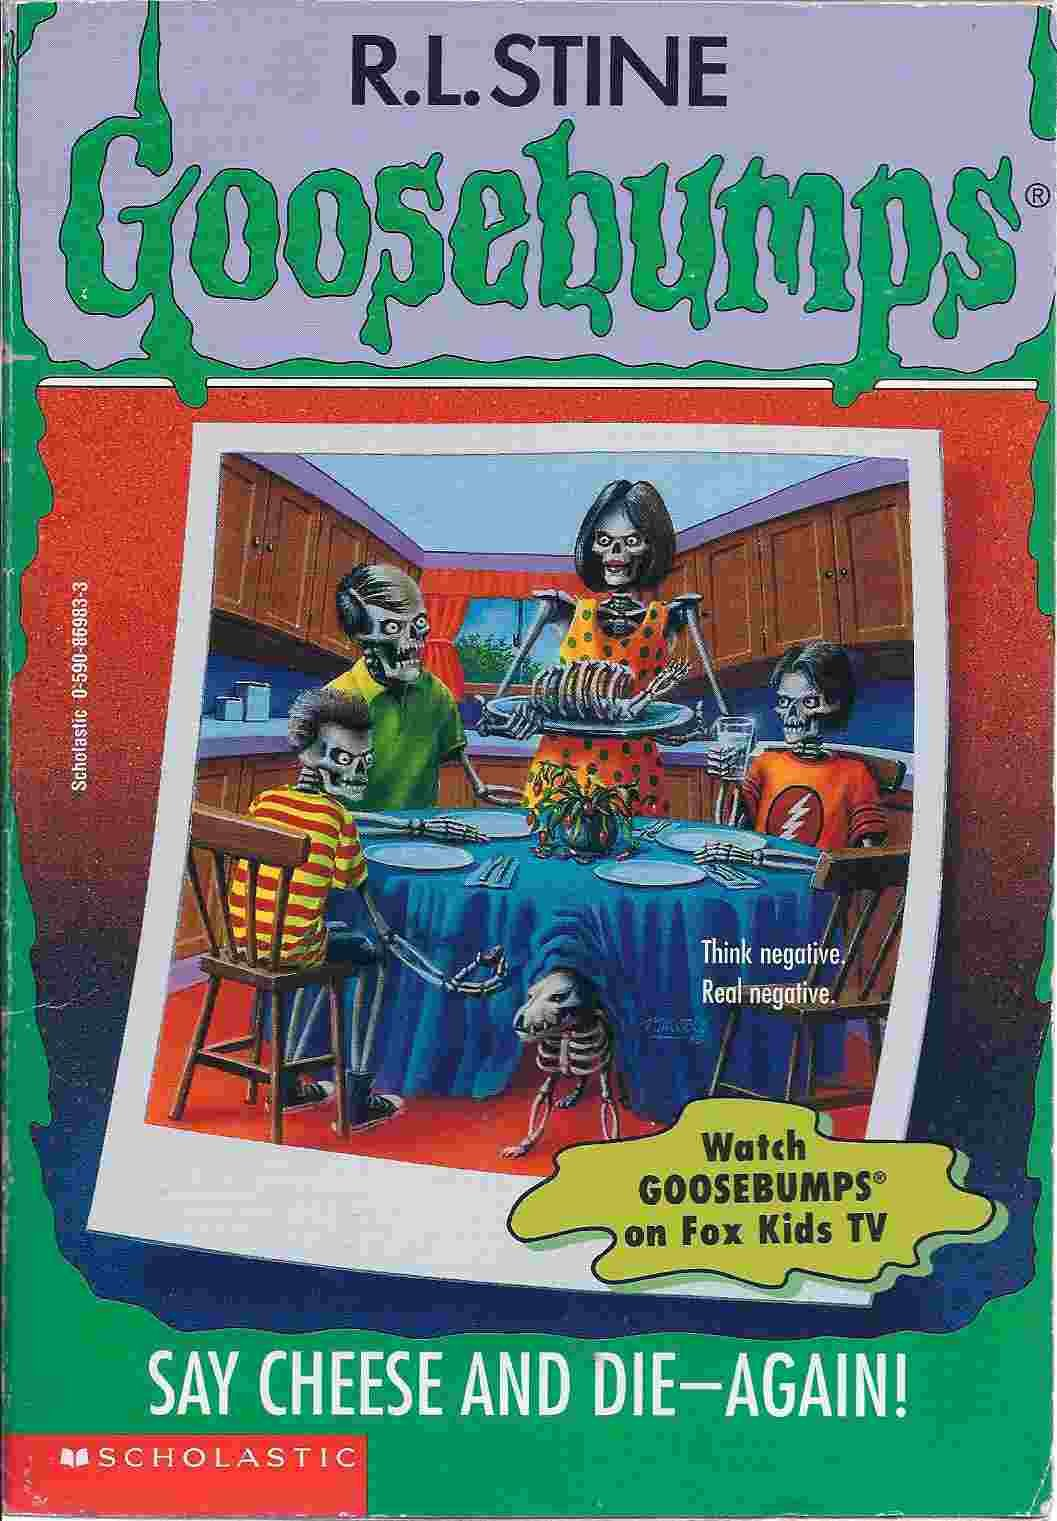 How do you say goosebumps in spanish